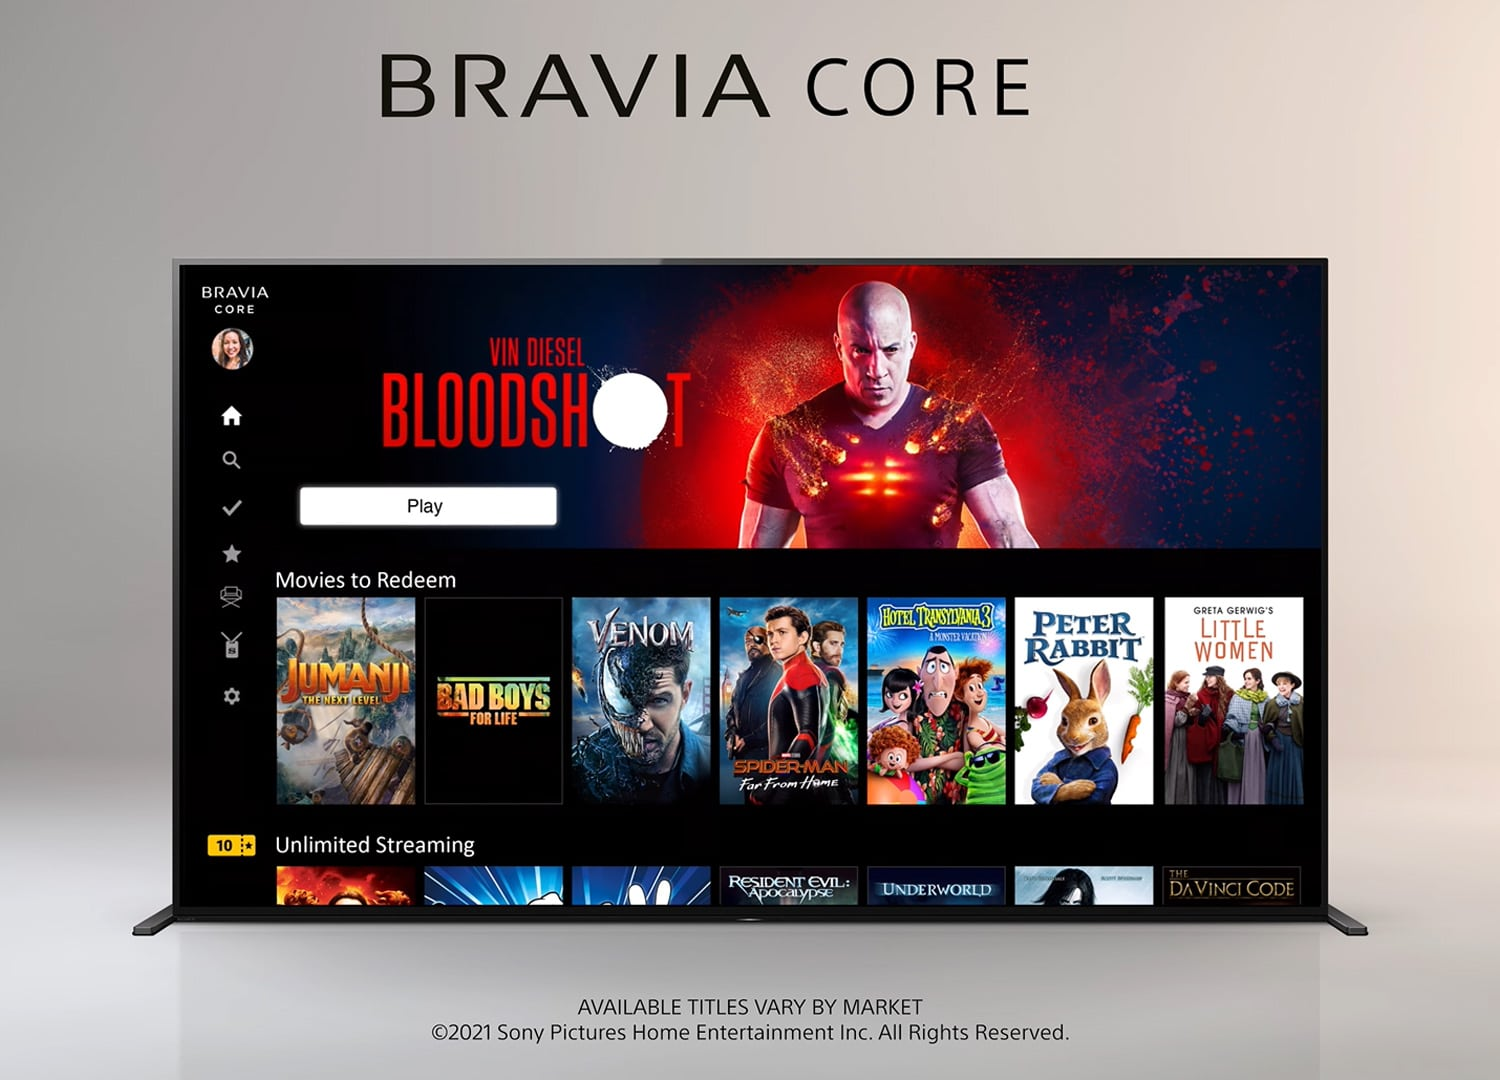 Sony's Bravia Core streaming service will deliver video comparable to Blu-ray